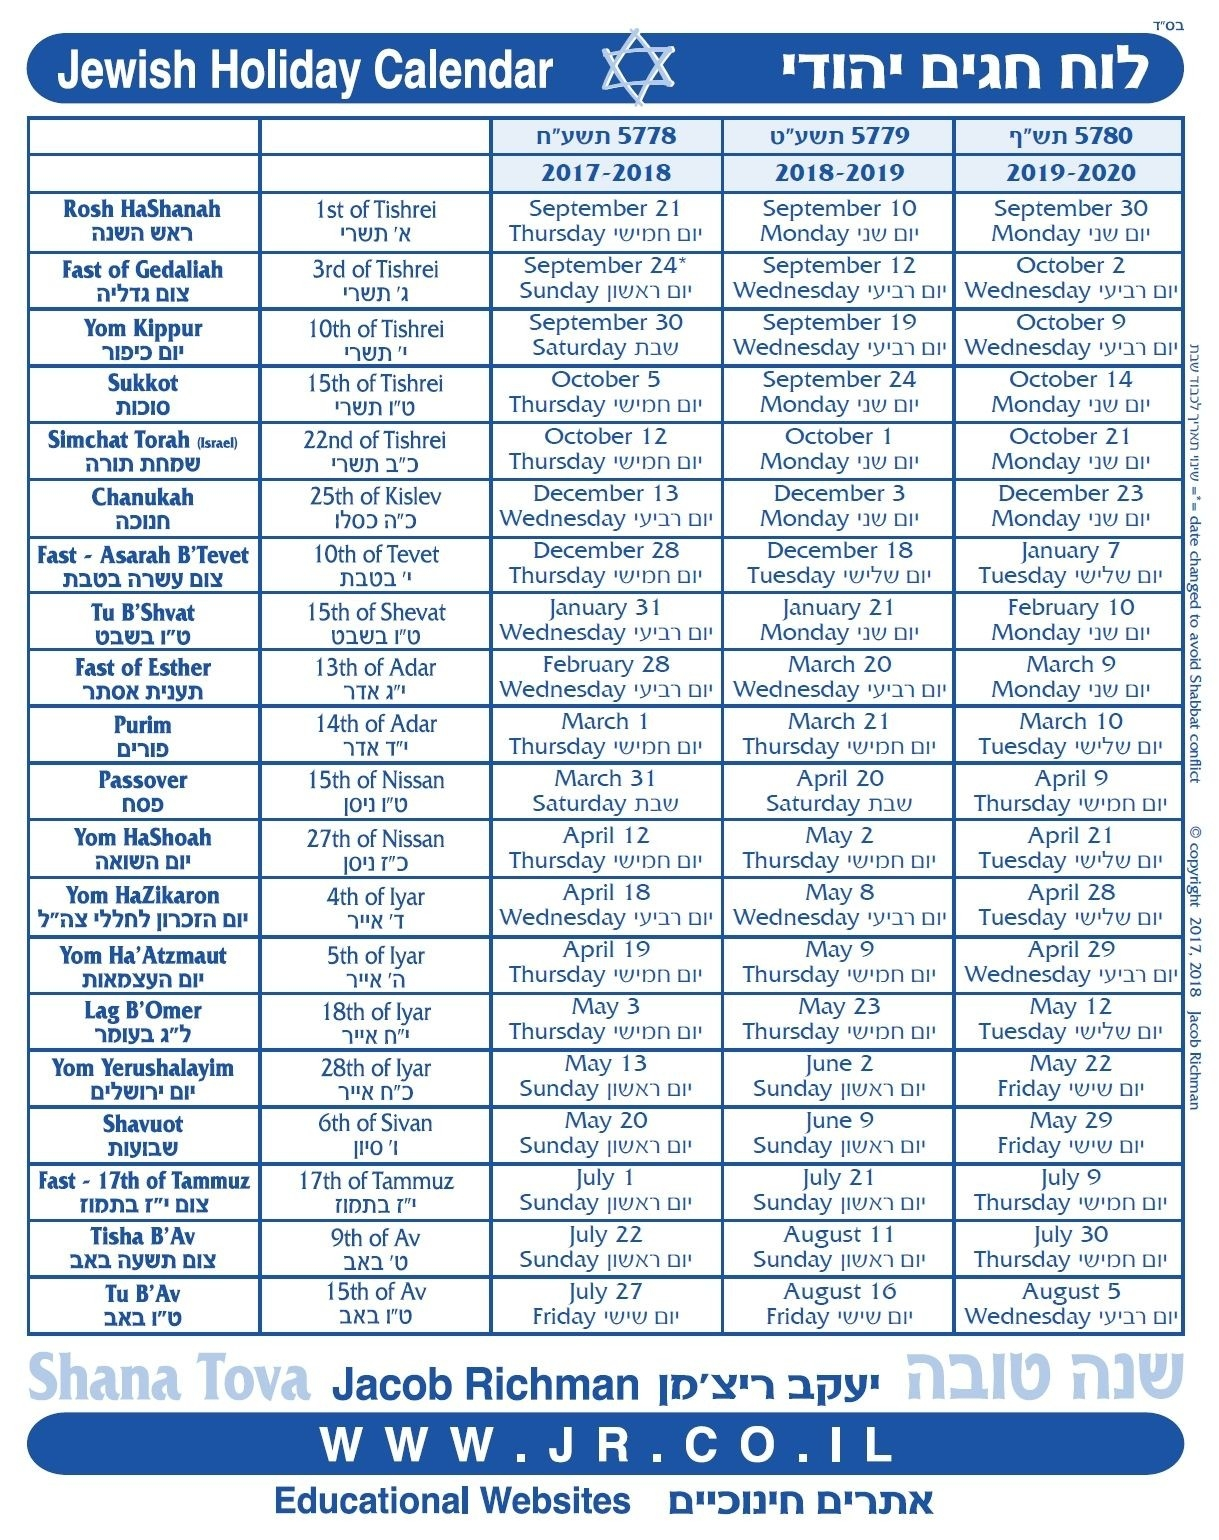 3 Year Jewish Holiday Calendar: 5778-5780 / 2017-2020 For-What Are The Dates Of The Jewish Holidays For 2020